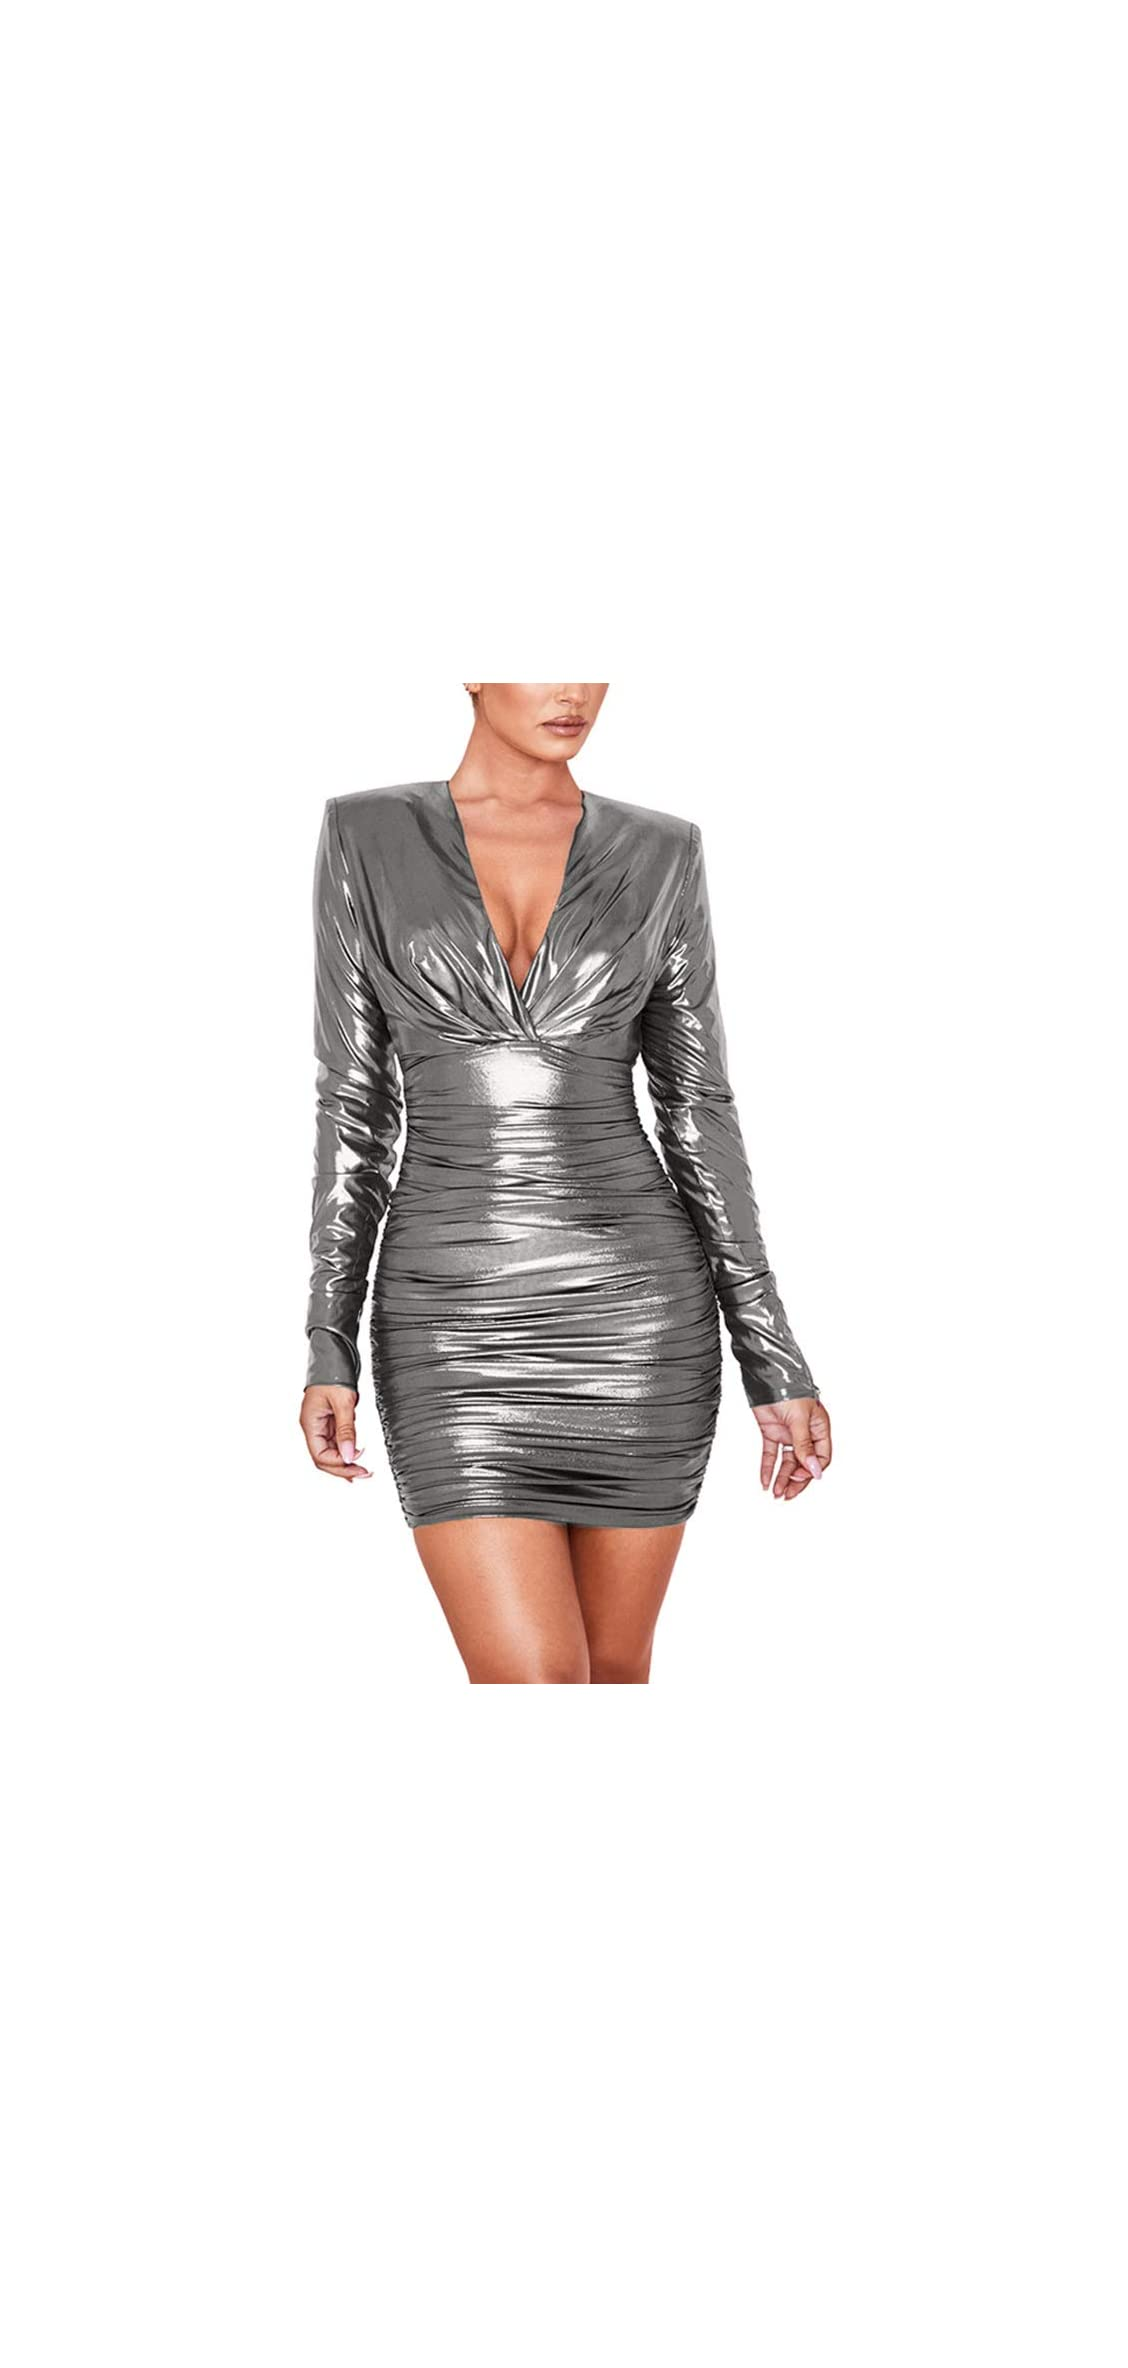 Woman Sexy Bodycon Dress - Sexy Club Outfits For Women V